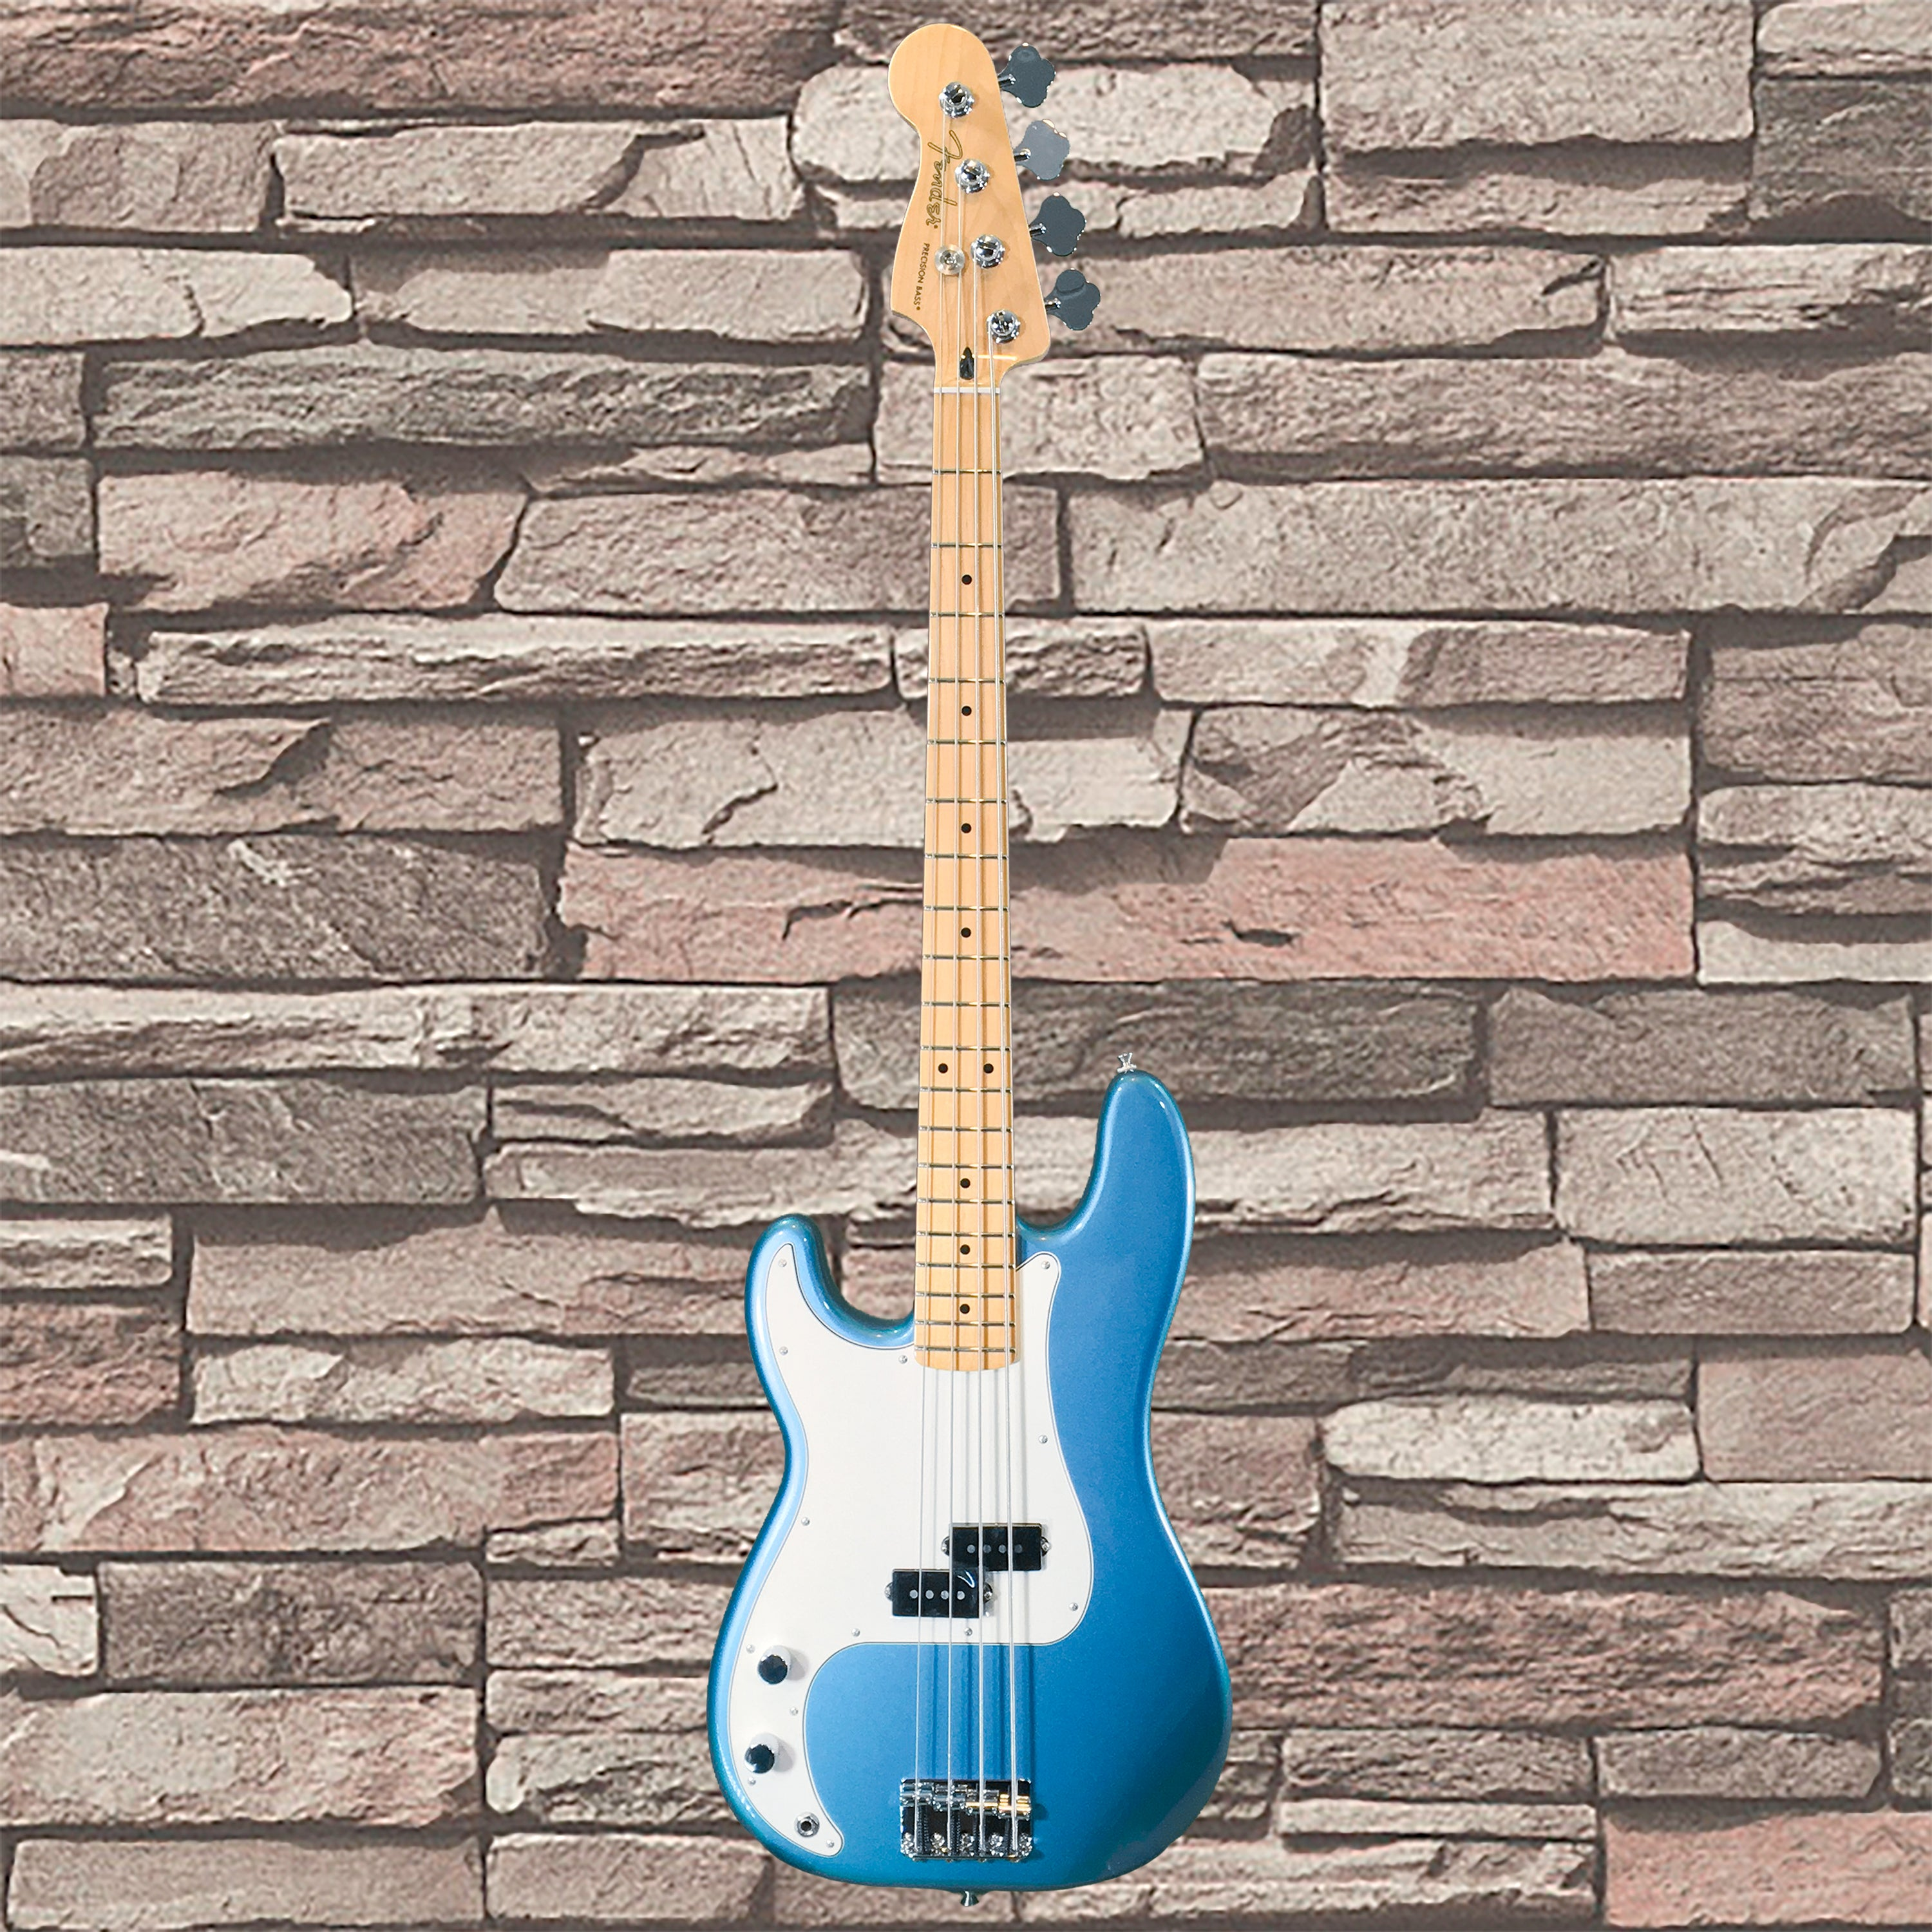 Fender Player Precision Bass Maple Fingerboard Left Handed Tidepool Accurate Tone Control